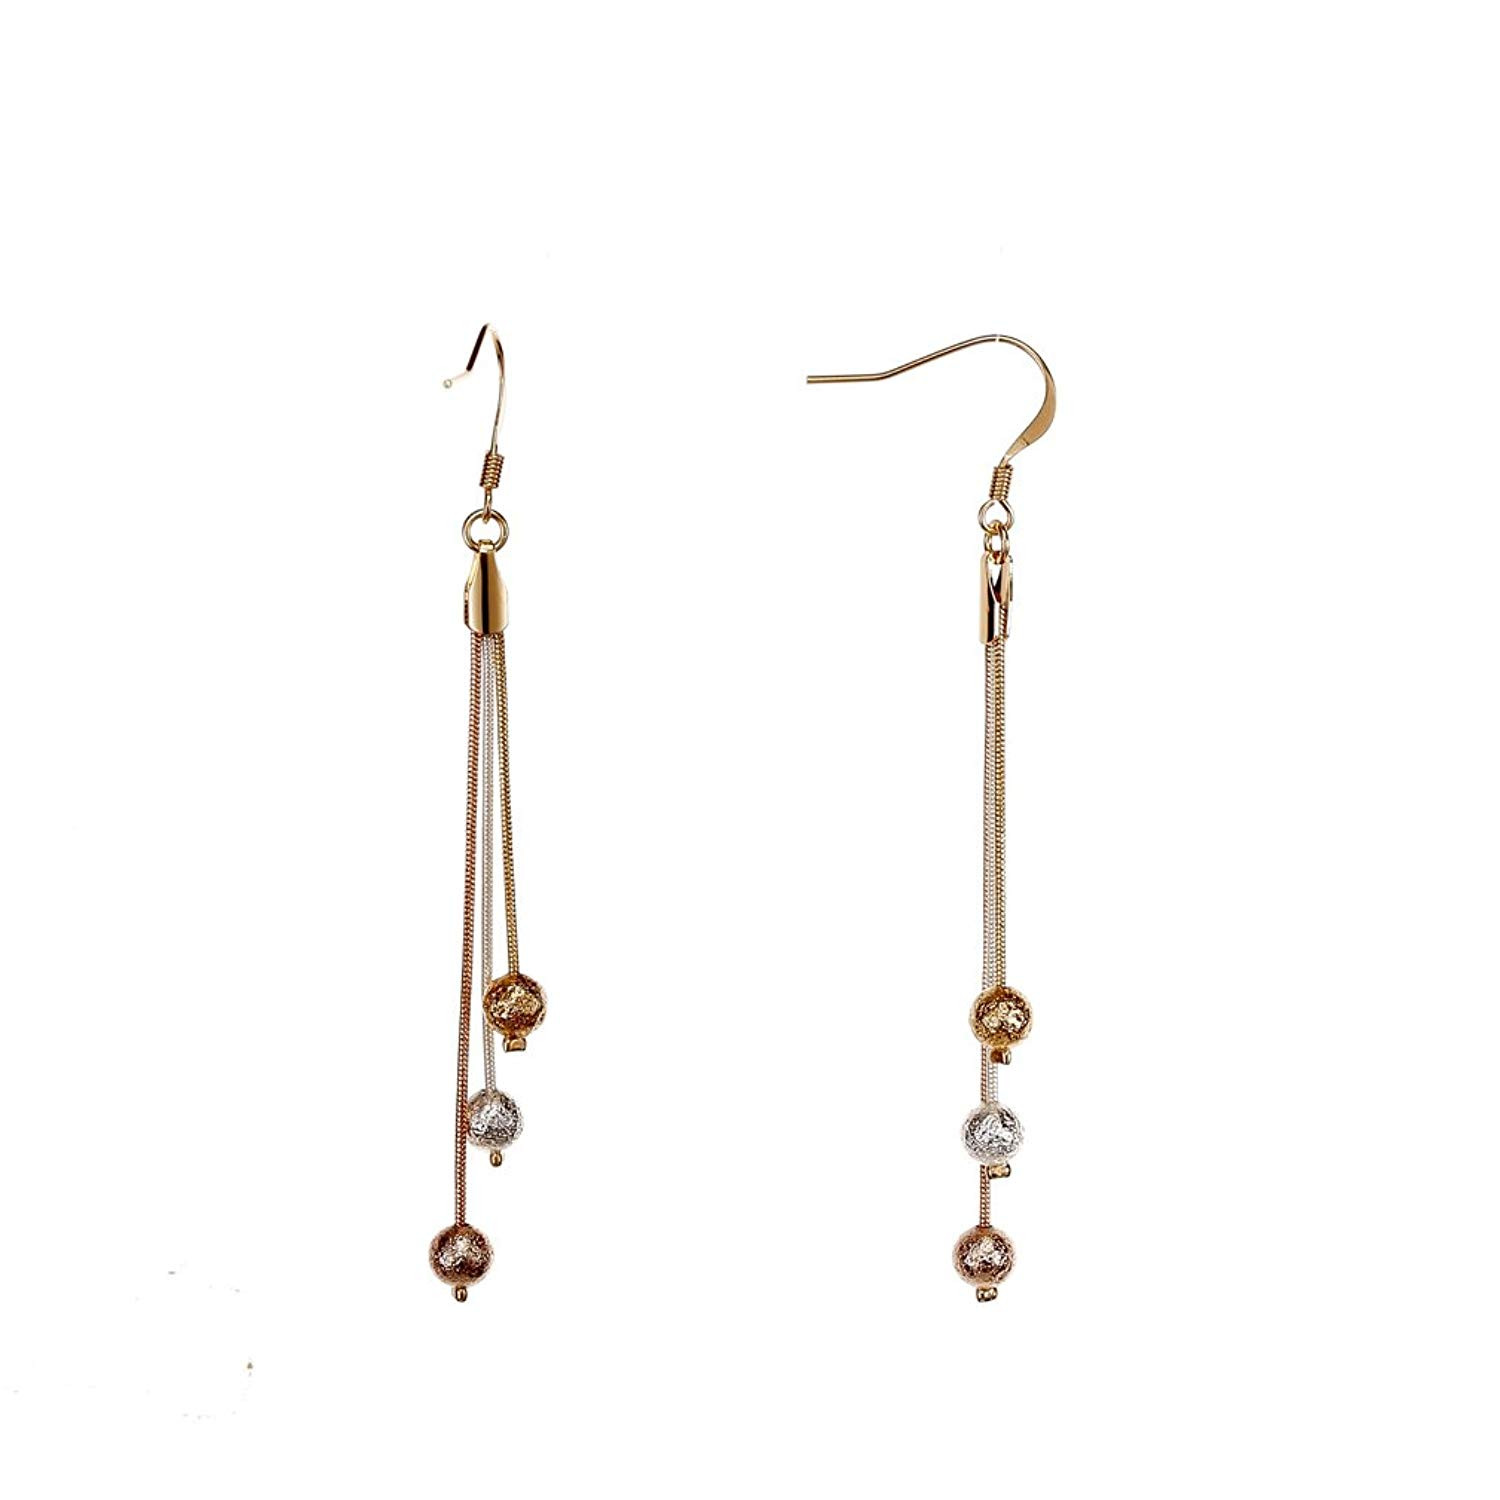 6b84b0cbf Get Quotations · CONIFERA Dangle Earrings with 3-Tone Snake Chain and Dull  Polished Beads for Women Girls